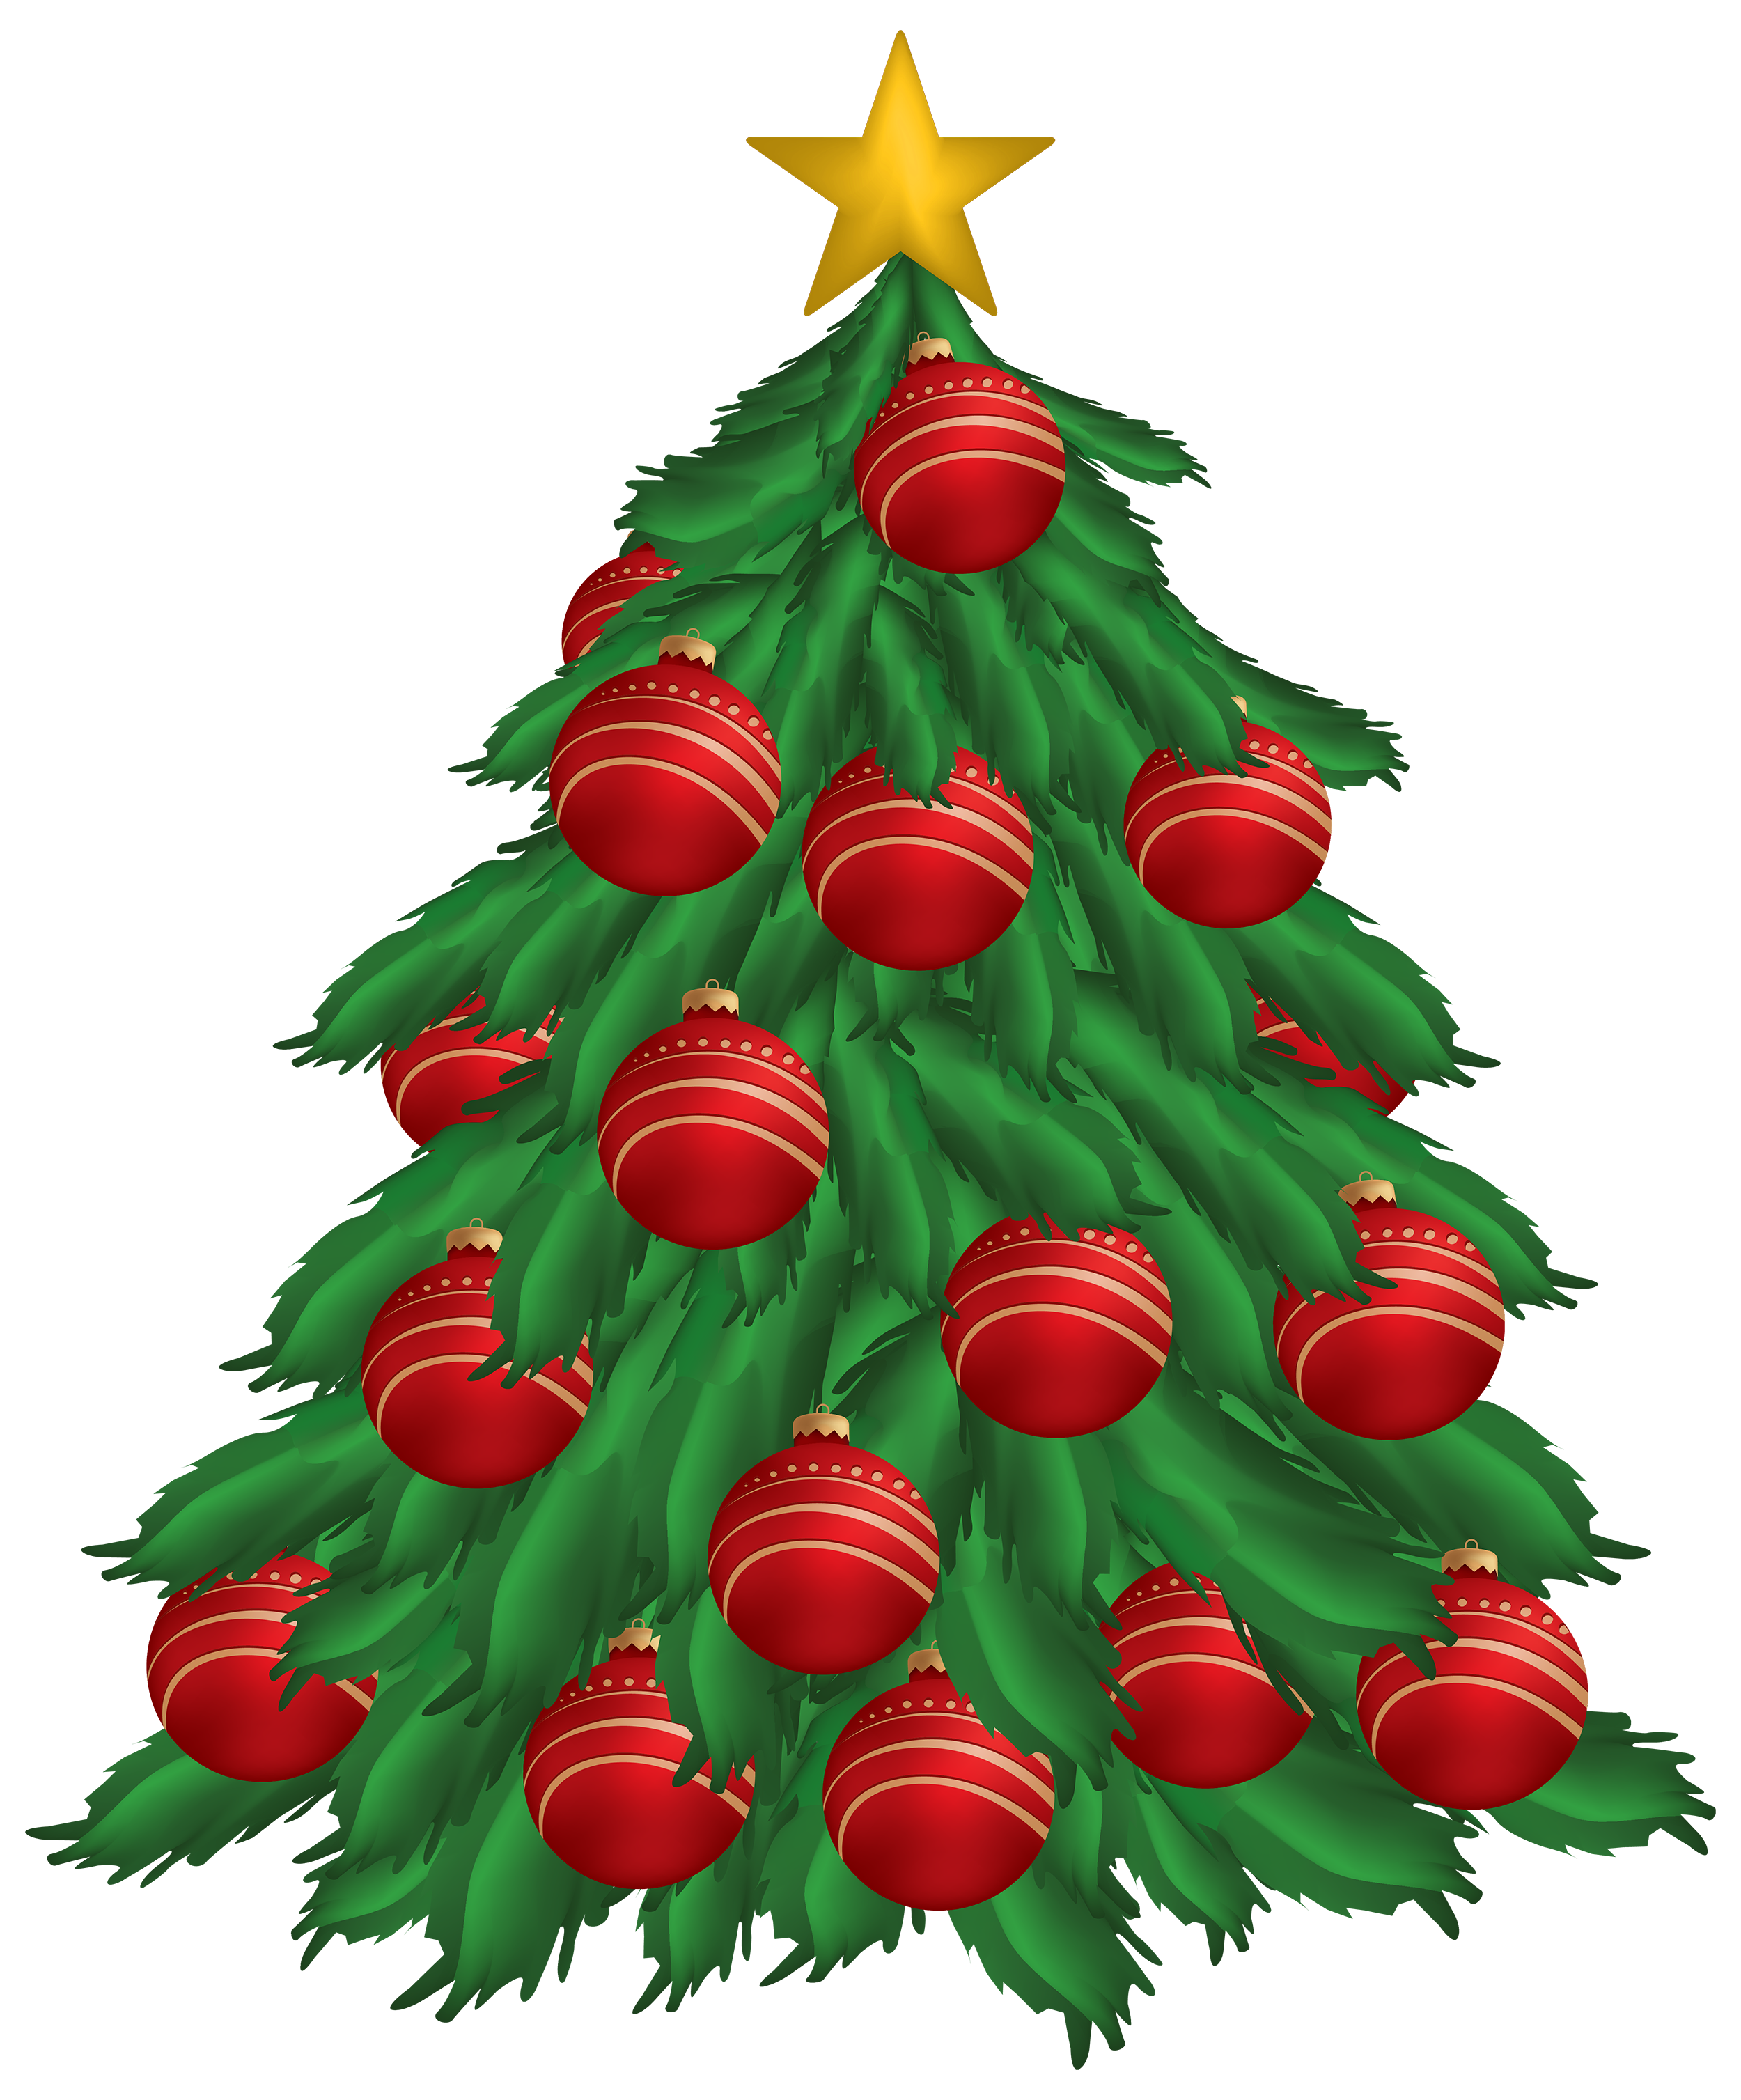 Tree ornament clipart jpg royalty free stock Christmas Tree Ornaments Clipart at GetDrawings.com | Free for ... jpg royalty free stock